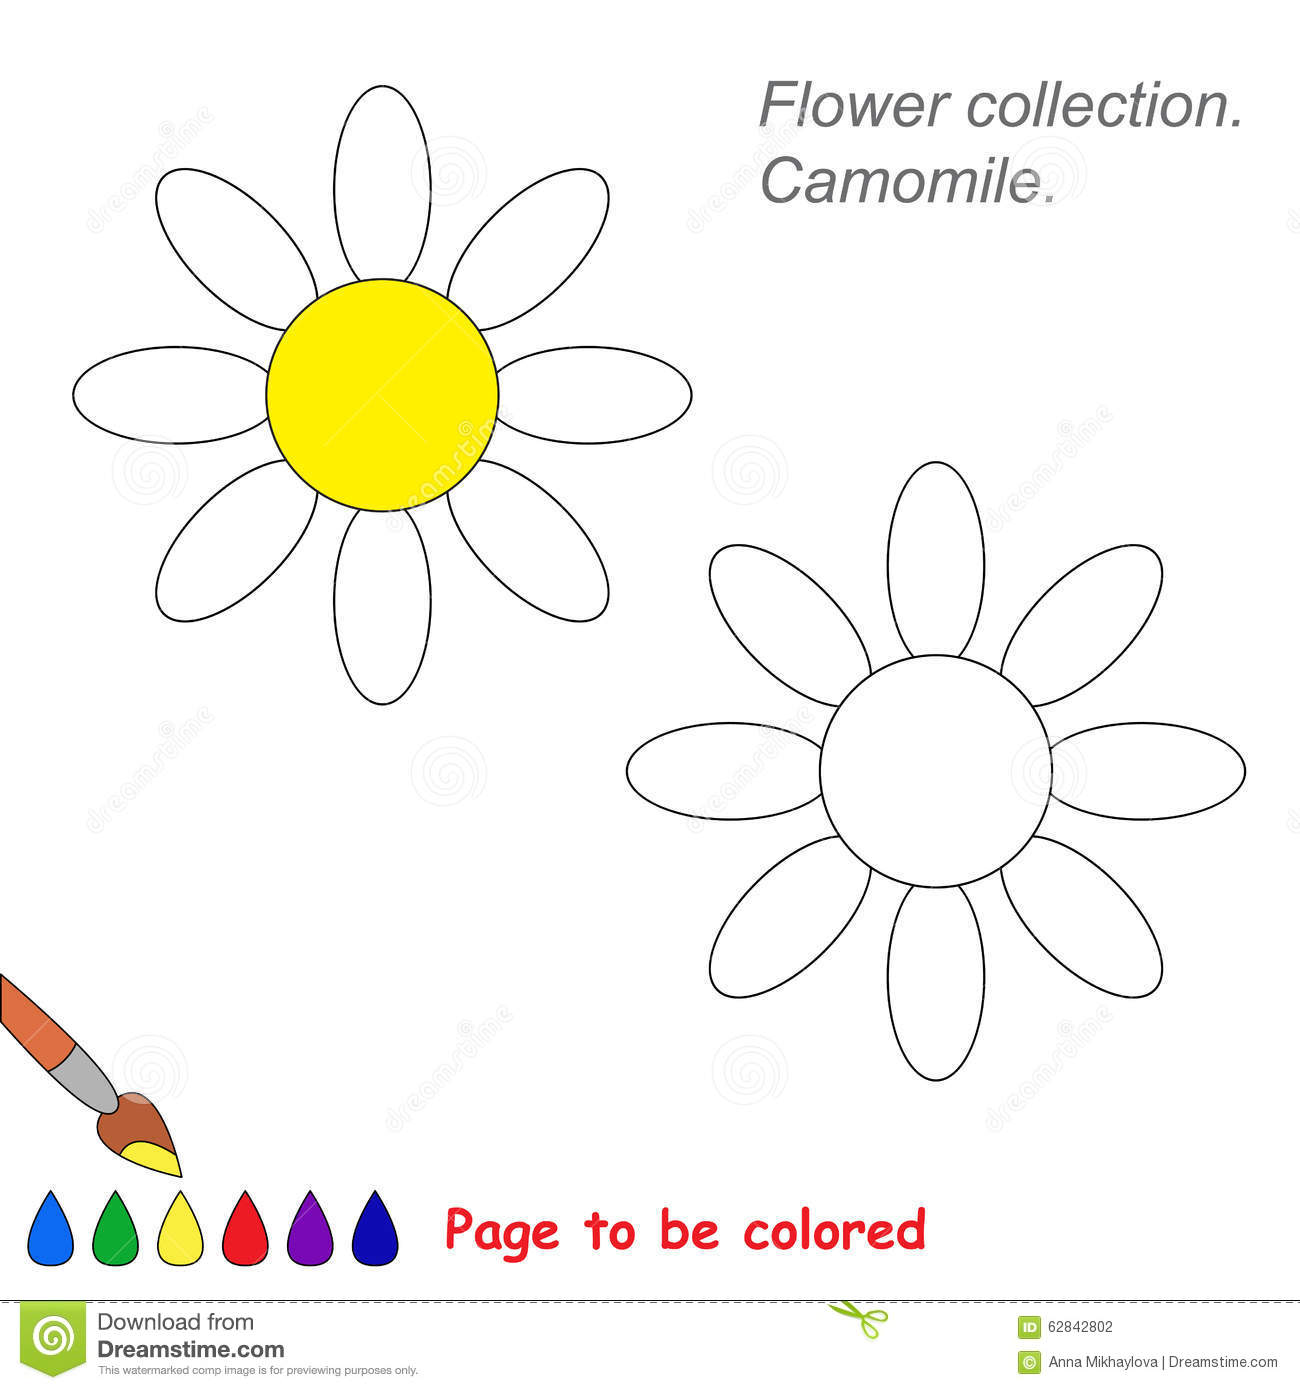 Camomile coloring #4, Download drawings